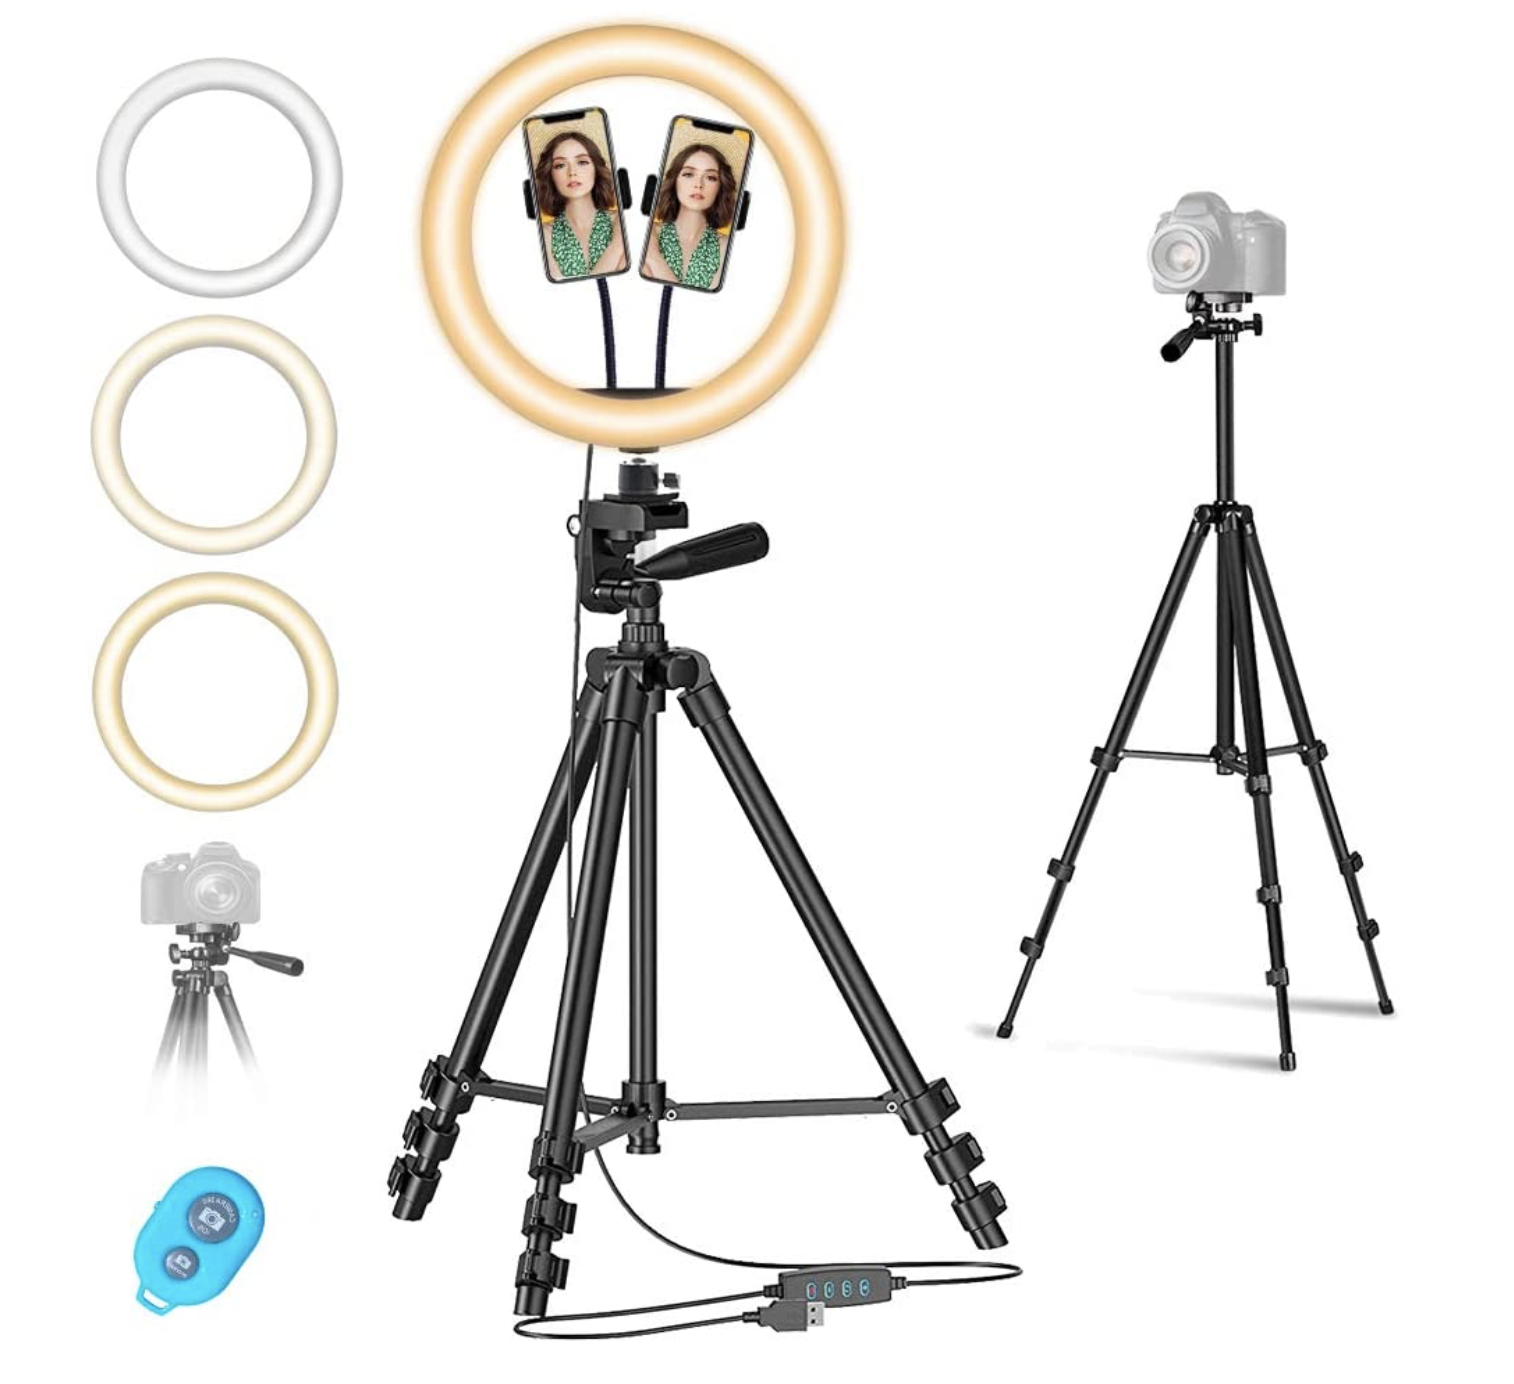 Ring light tripod set